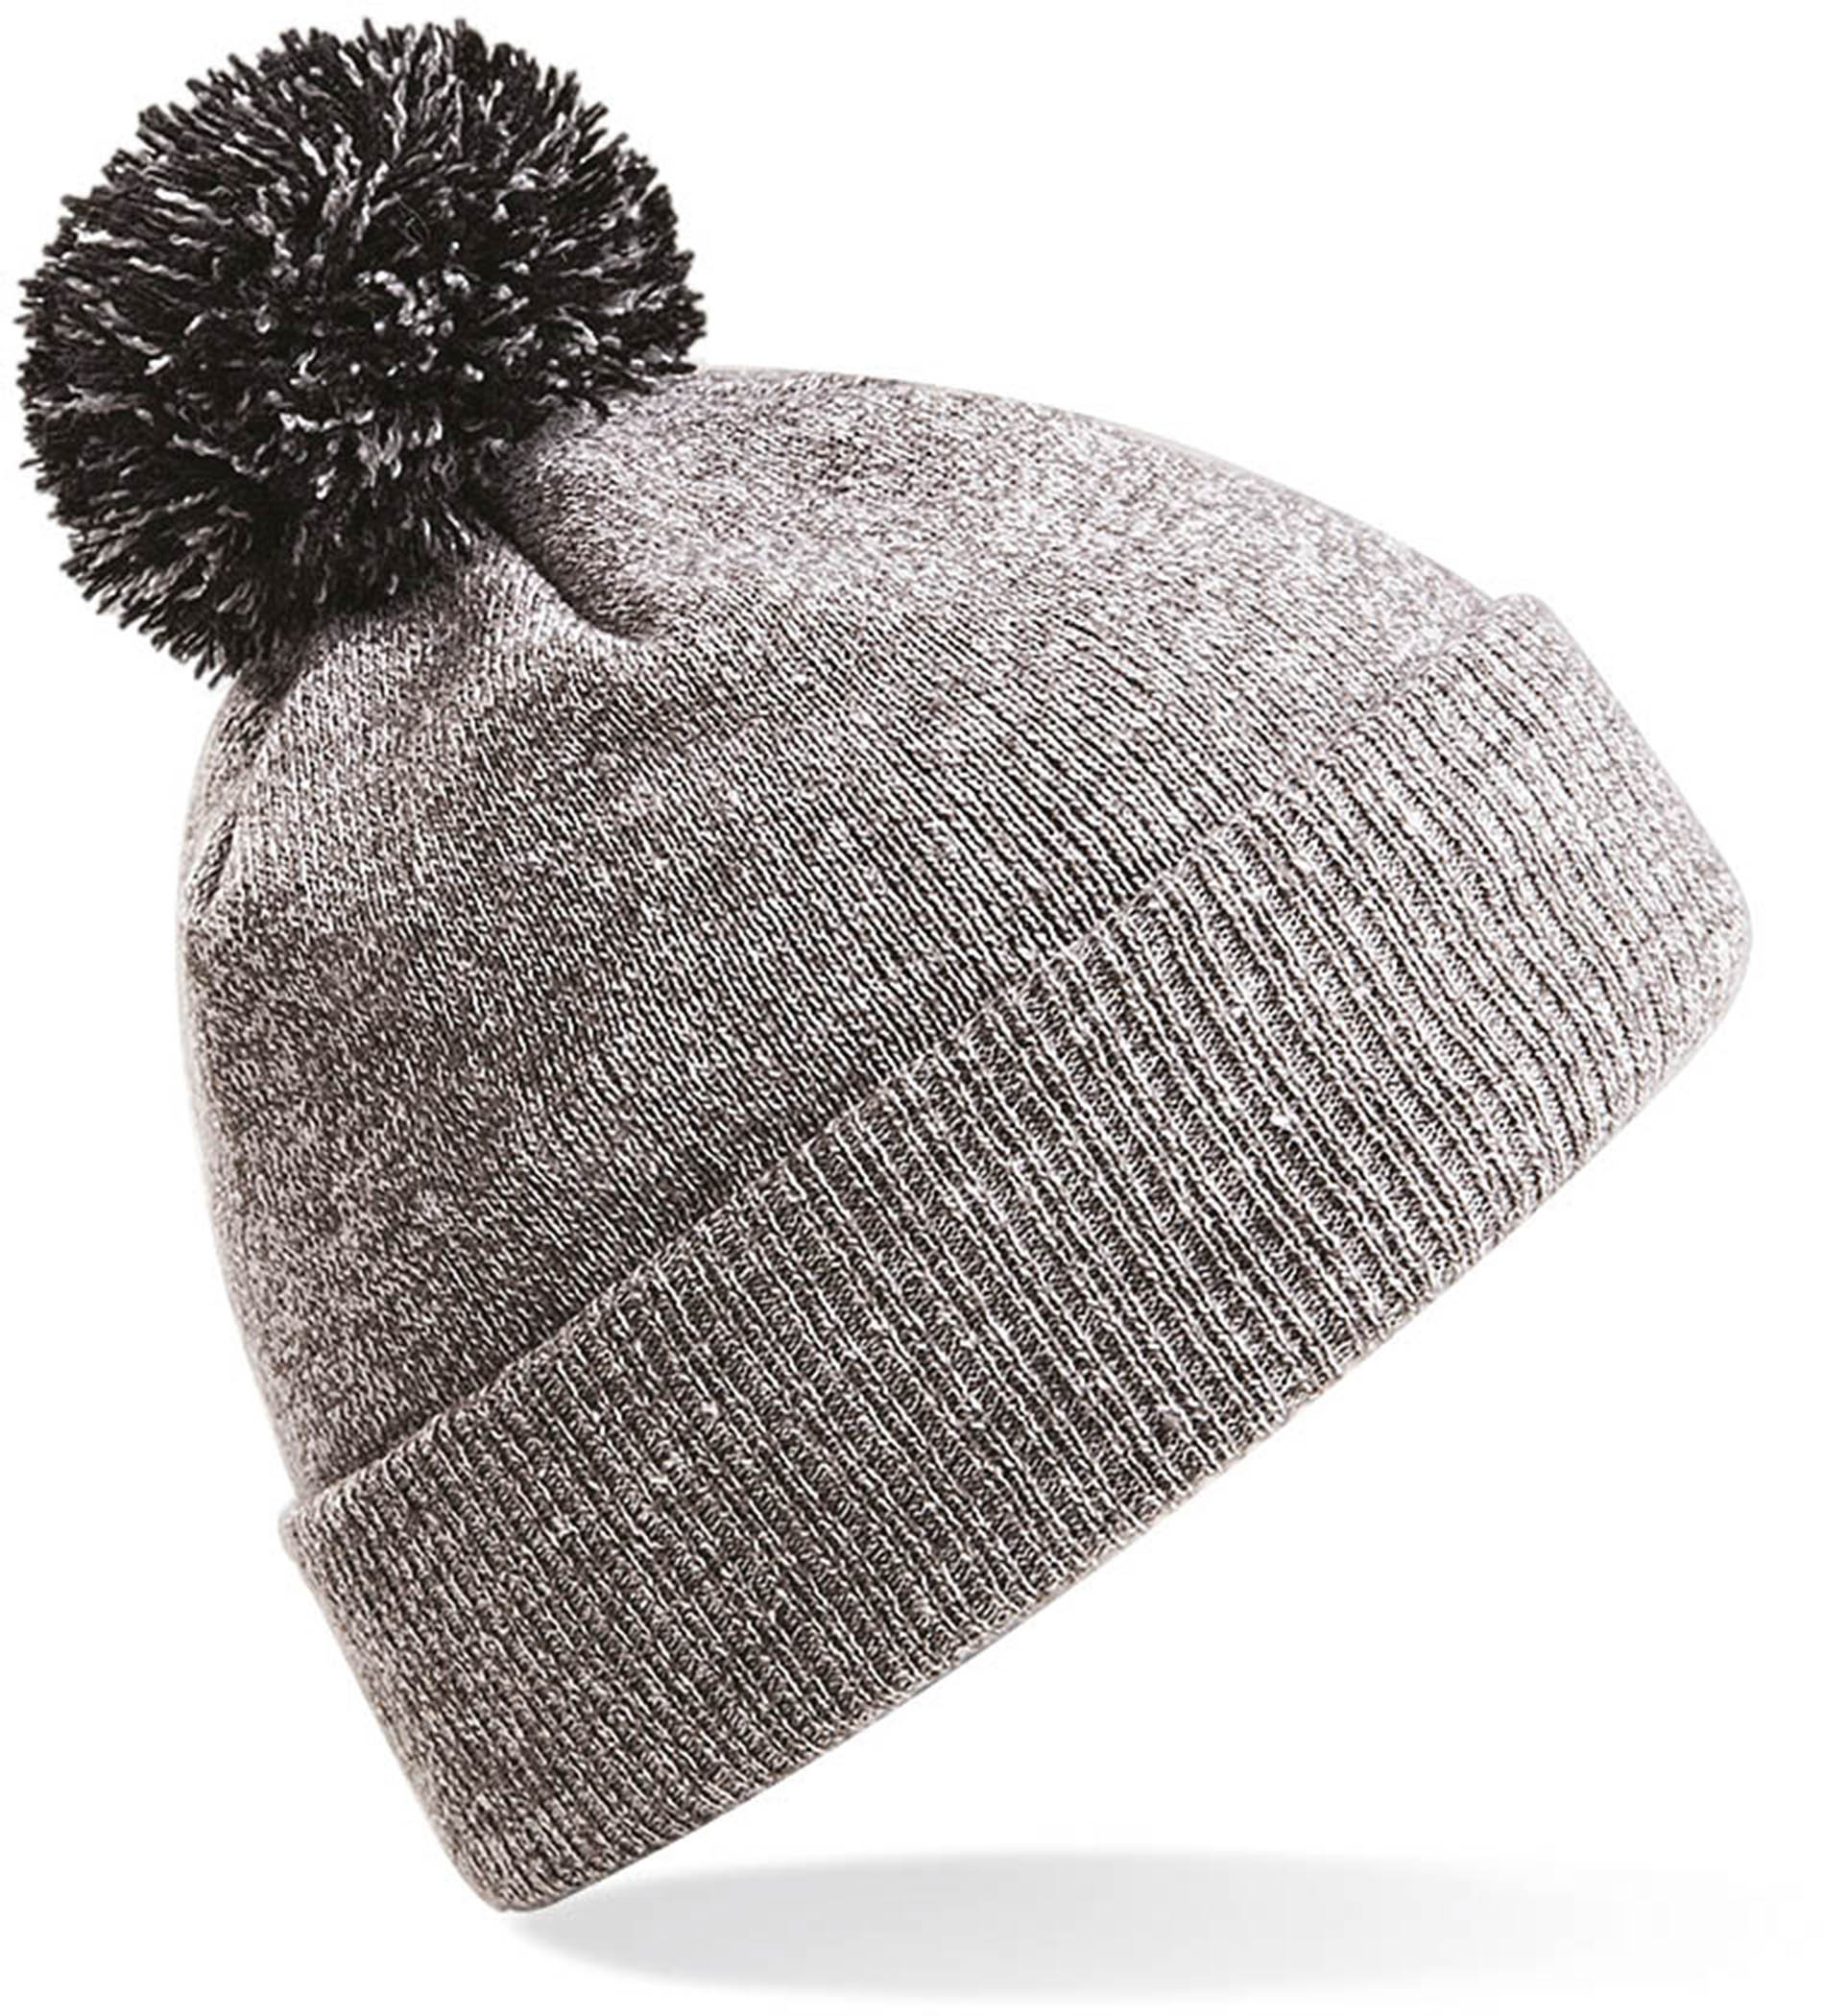 Bonnet Snowstar  Heather grey Black